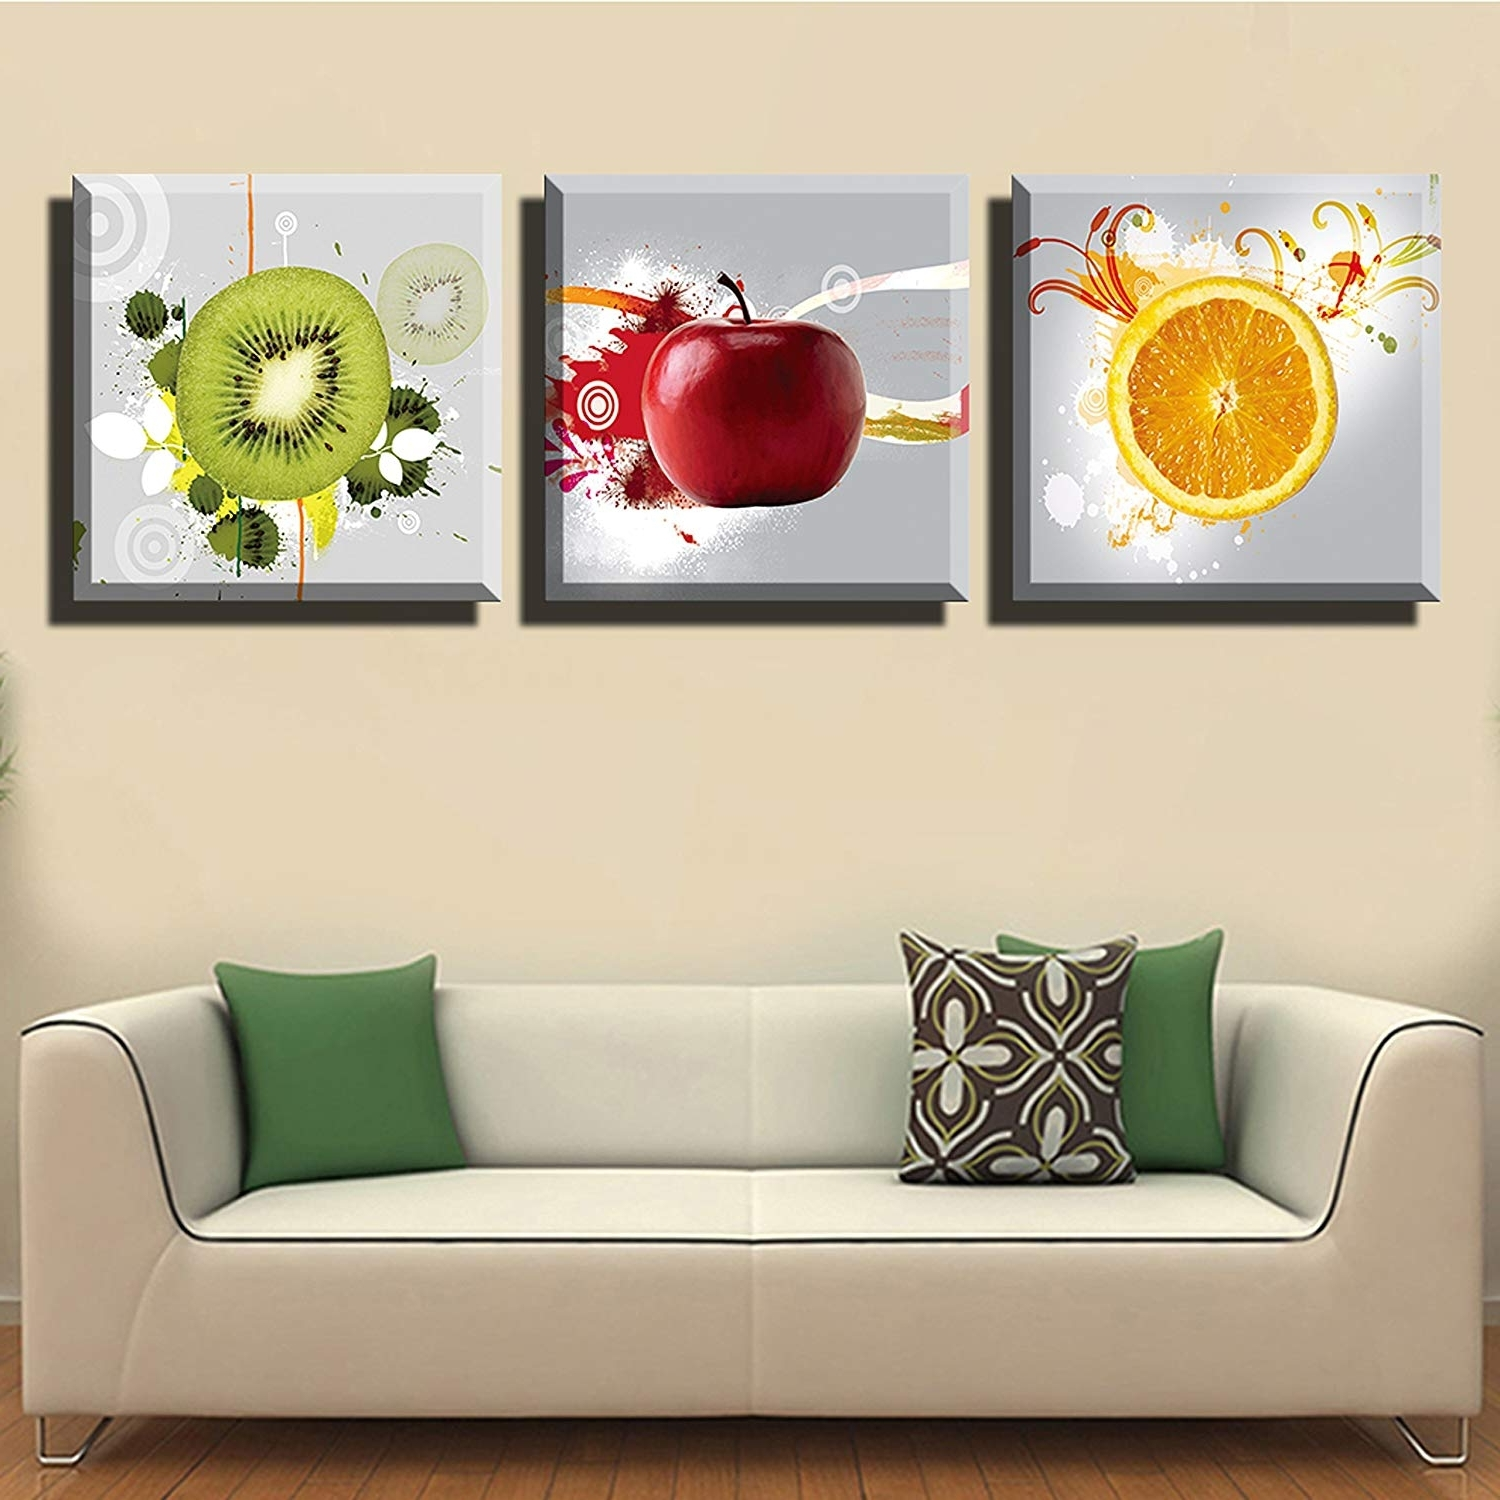 Wall Art Canvas Pertaining To Fashionable Amazon: Lyglo Canvas Prints – Bright And Vibrant Fruit Canvas (View 5 of 15)